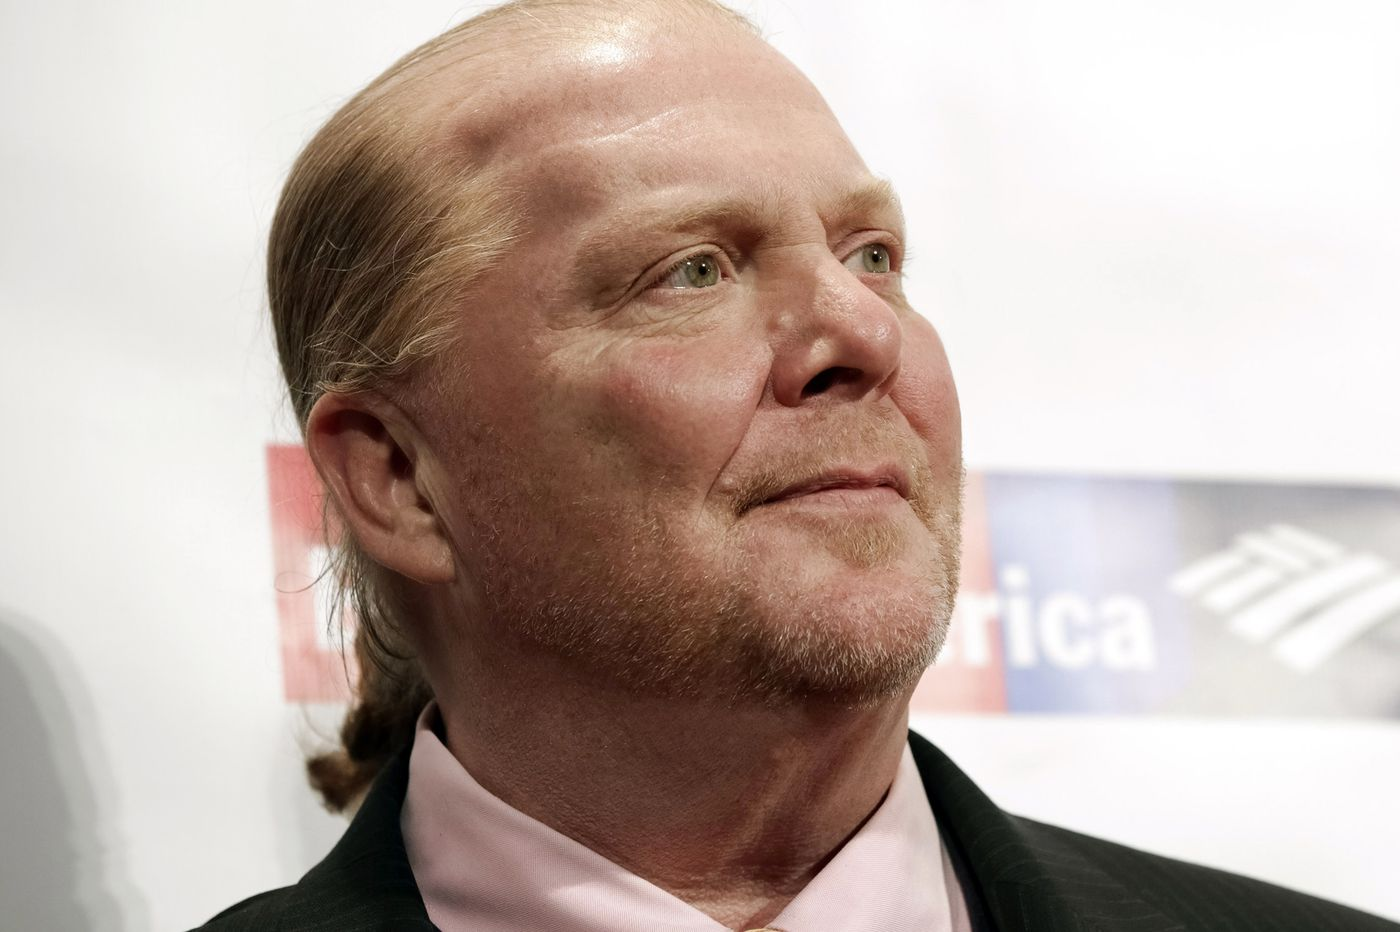 Mario Batali facing indecent assault and battery charge in Boston